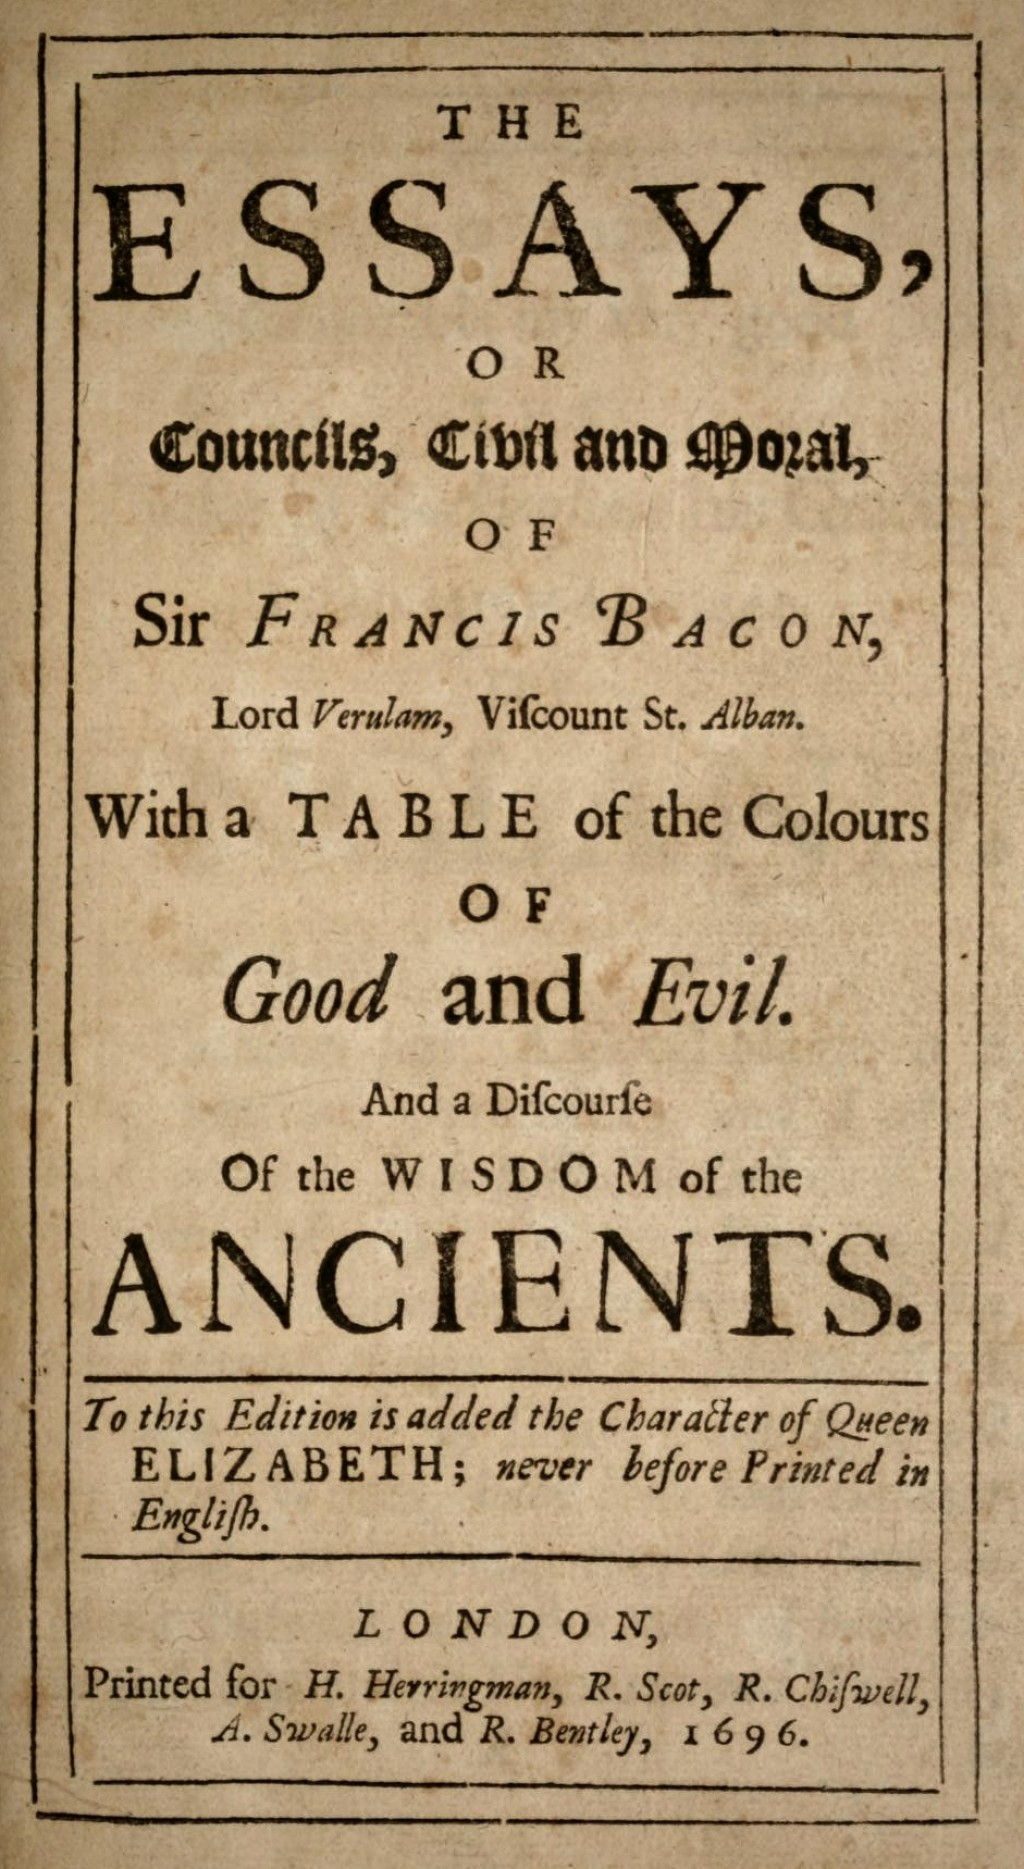 001 Essay Example Francis Bacon Essays 1696 Awesome Analysis Pdf Of Truth Download Critical Appreciation Bacon's Large